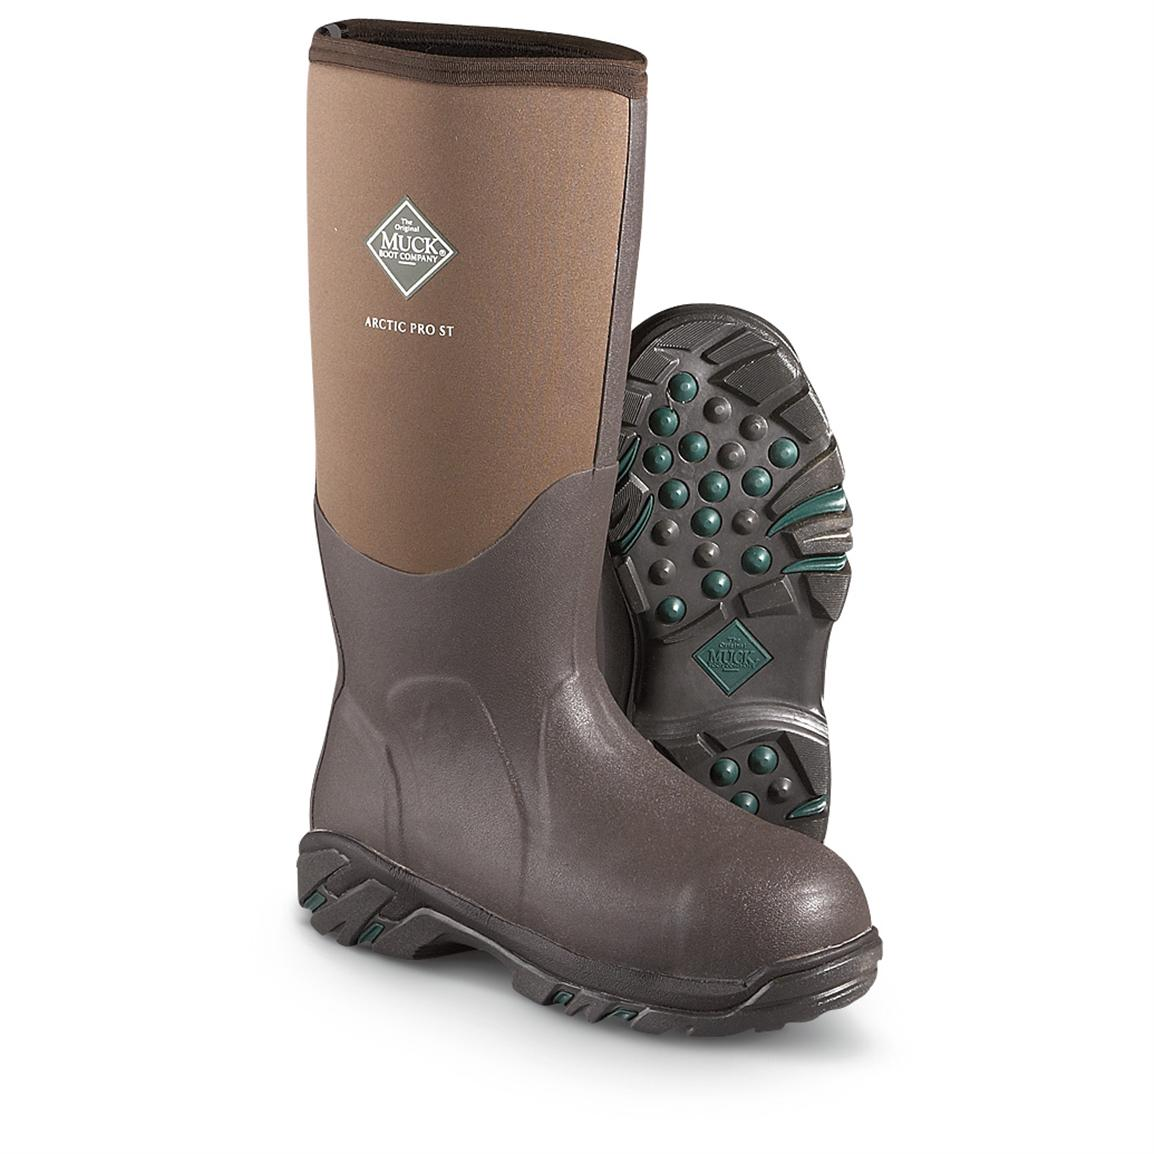 Muck Boots were built for tough environments with thick, muddy terrain. The waterproof performance, warmth-trapping properties and durable rubber construction grant full protection from the elements so you can stay out all day long.